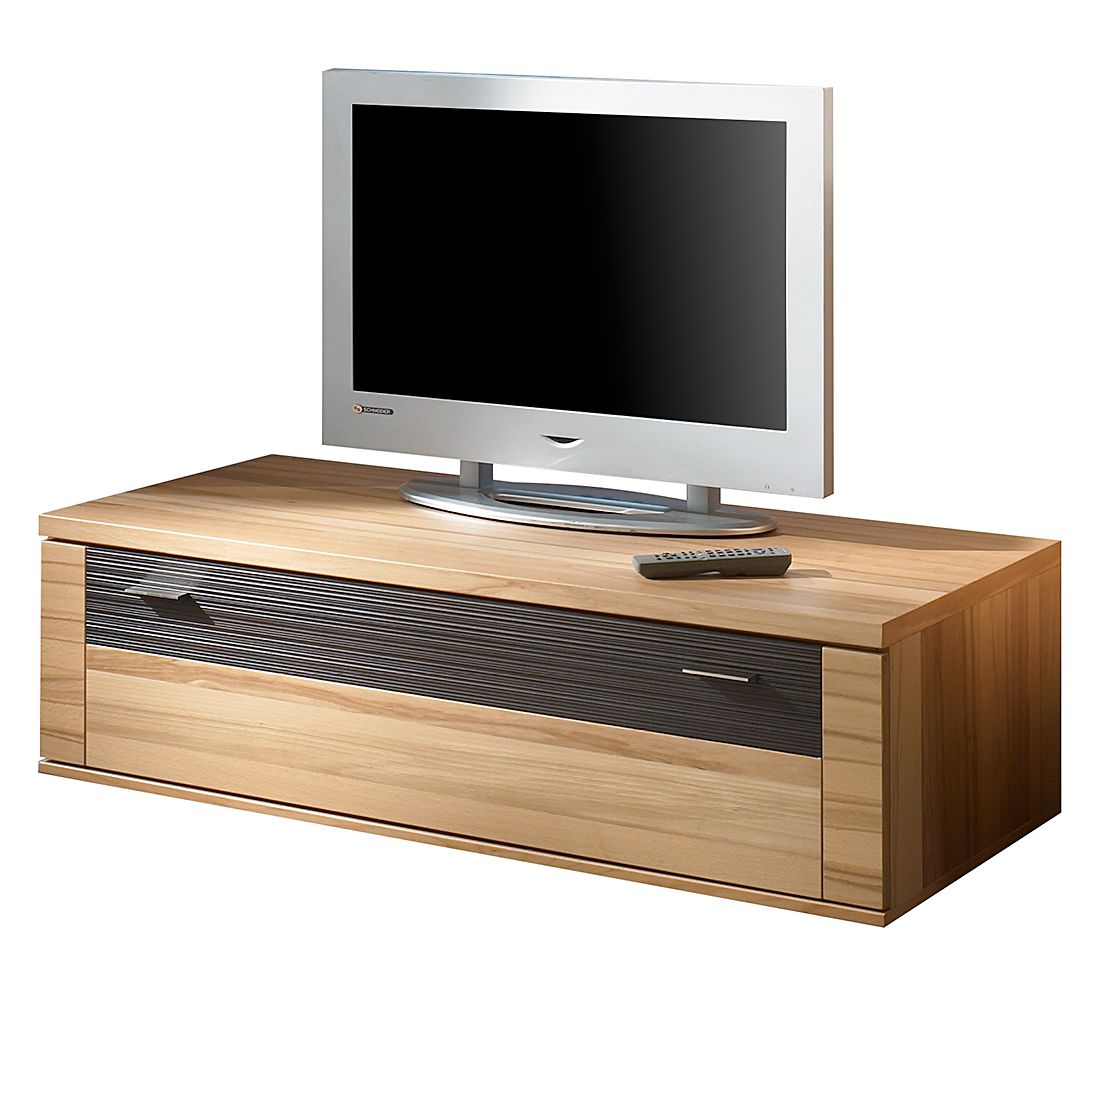 meuble tv meuble tv de 120 cm de hauteur meuble tv de 120 cm de hauteur trouvez meuble tv de. Black Bedroom Furniture Sets. Home Design Ideas